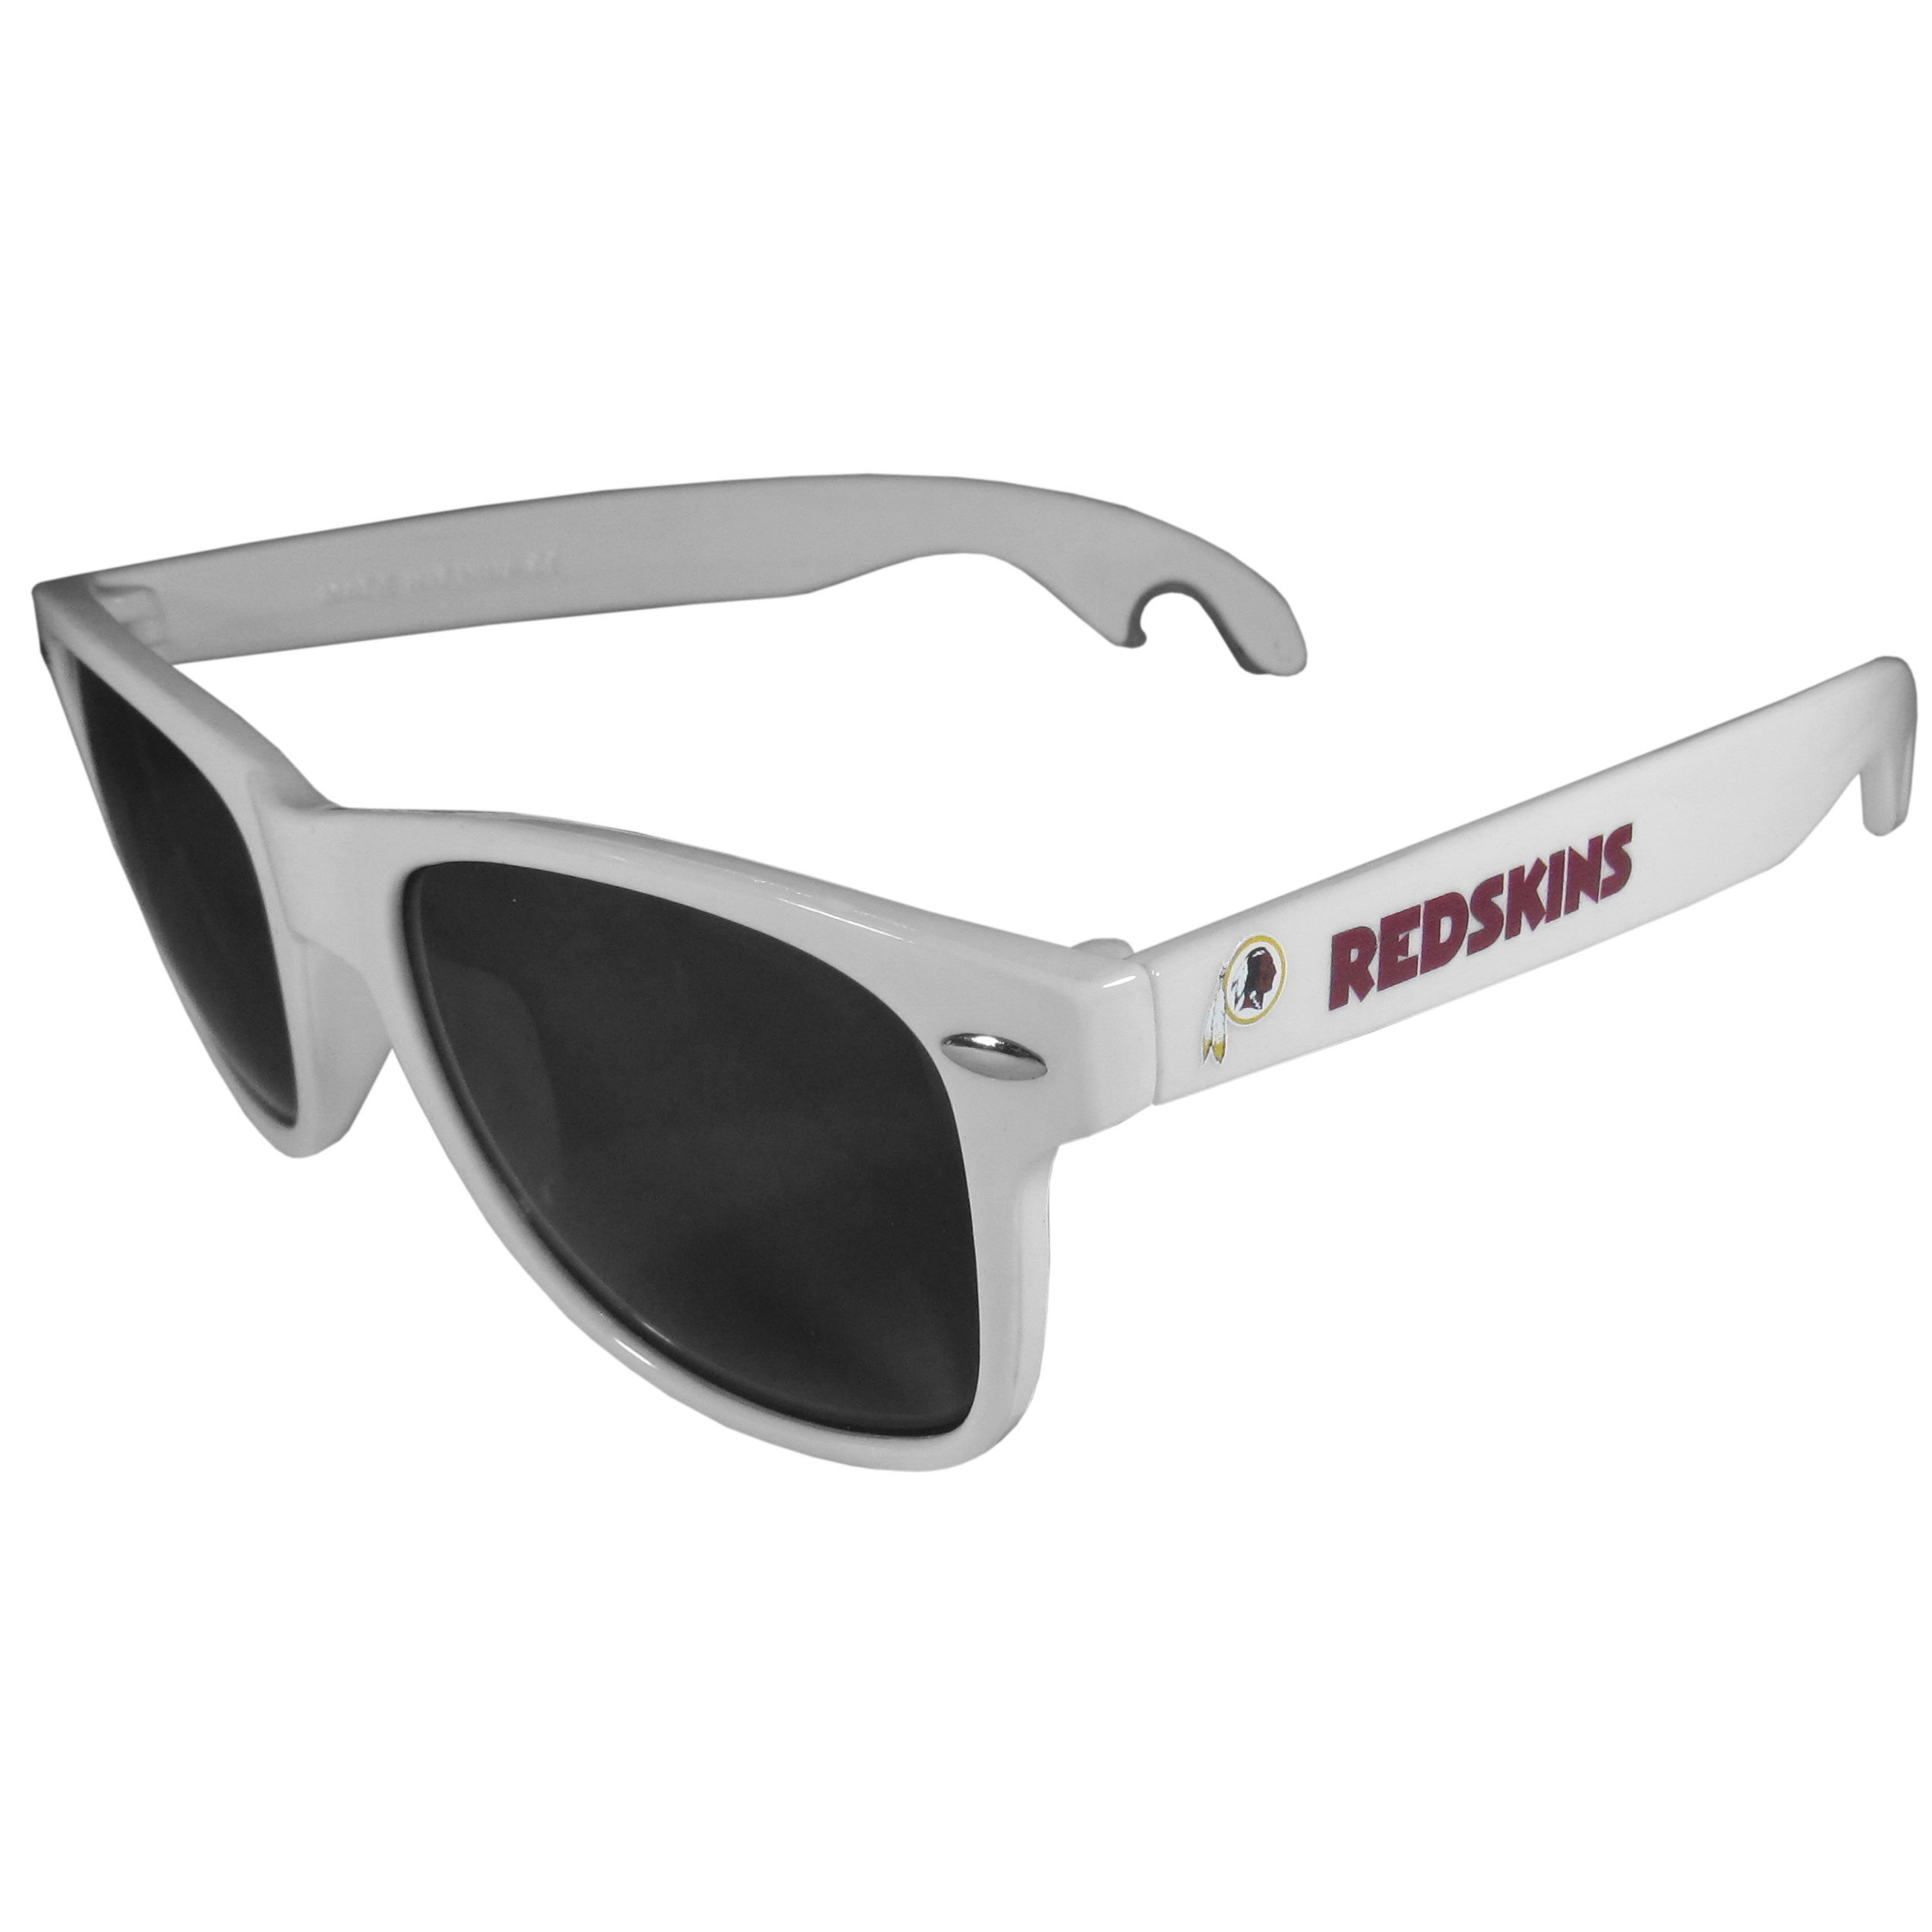 Washington Redskins Beachfarer Bottle Opener Sunglasses, White - Seriously, these sunglasses open bottles! Keep the party going with these amazing Washington Redskins bottle opener sunglasses. The stylish retro frames feature team designs on the arms and functional bottle openers on the end of the arms. Whether you are at the beach or having a backyard BBQ on game day, these shades will keep your eyes protected with 100% UVA/UVB protection and keep you hydrated with the handy bottle opener arms.